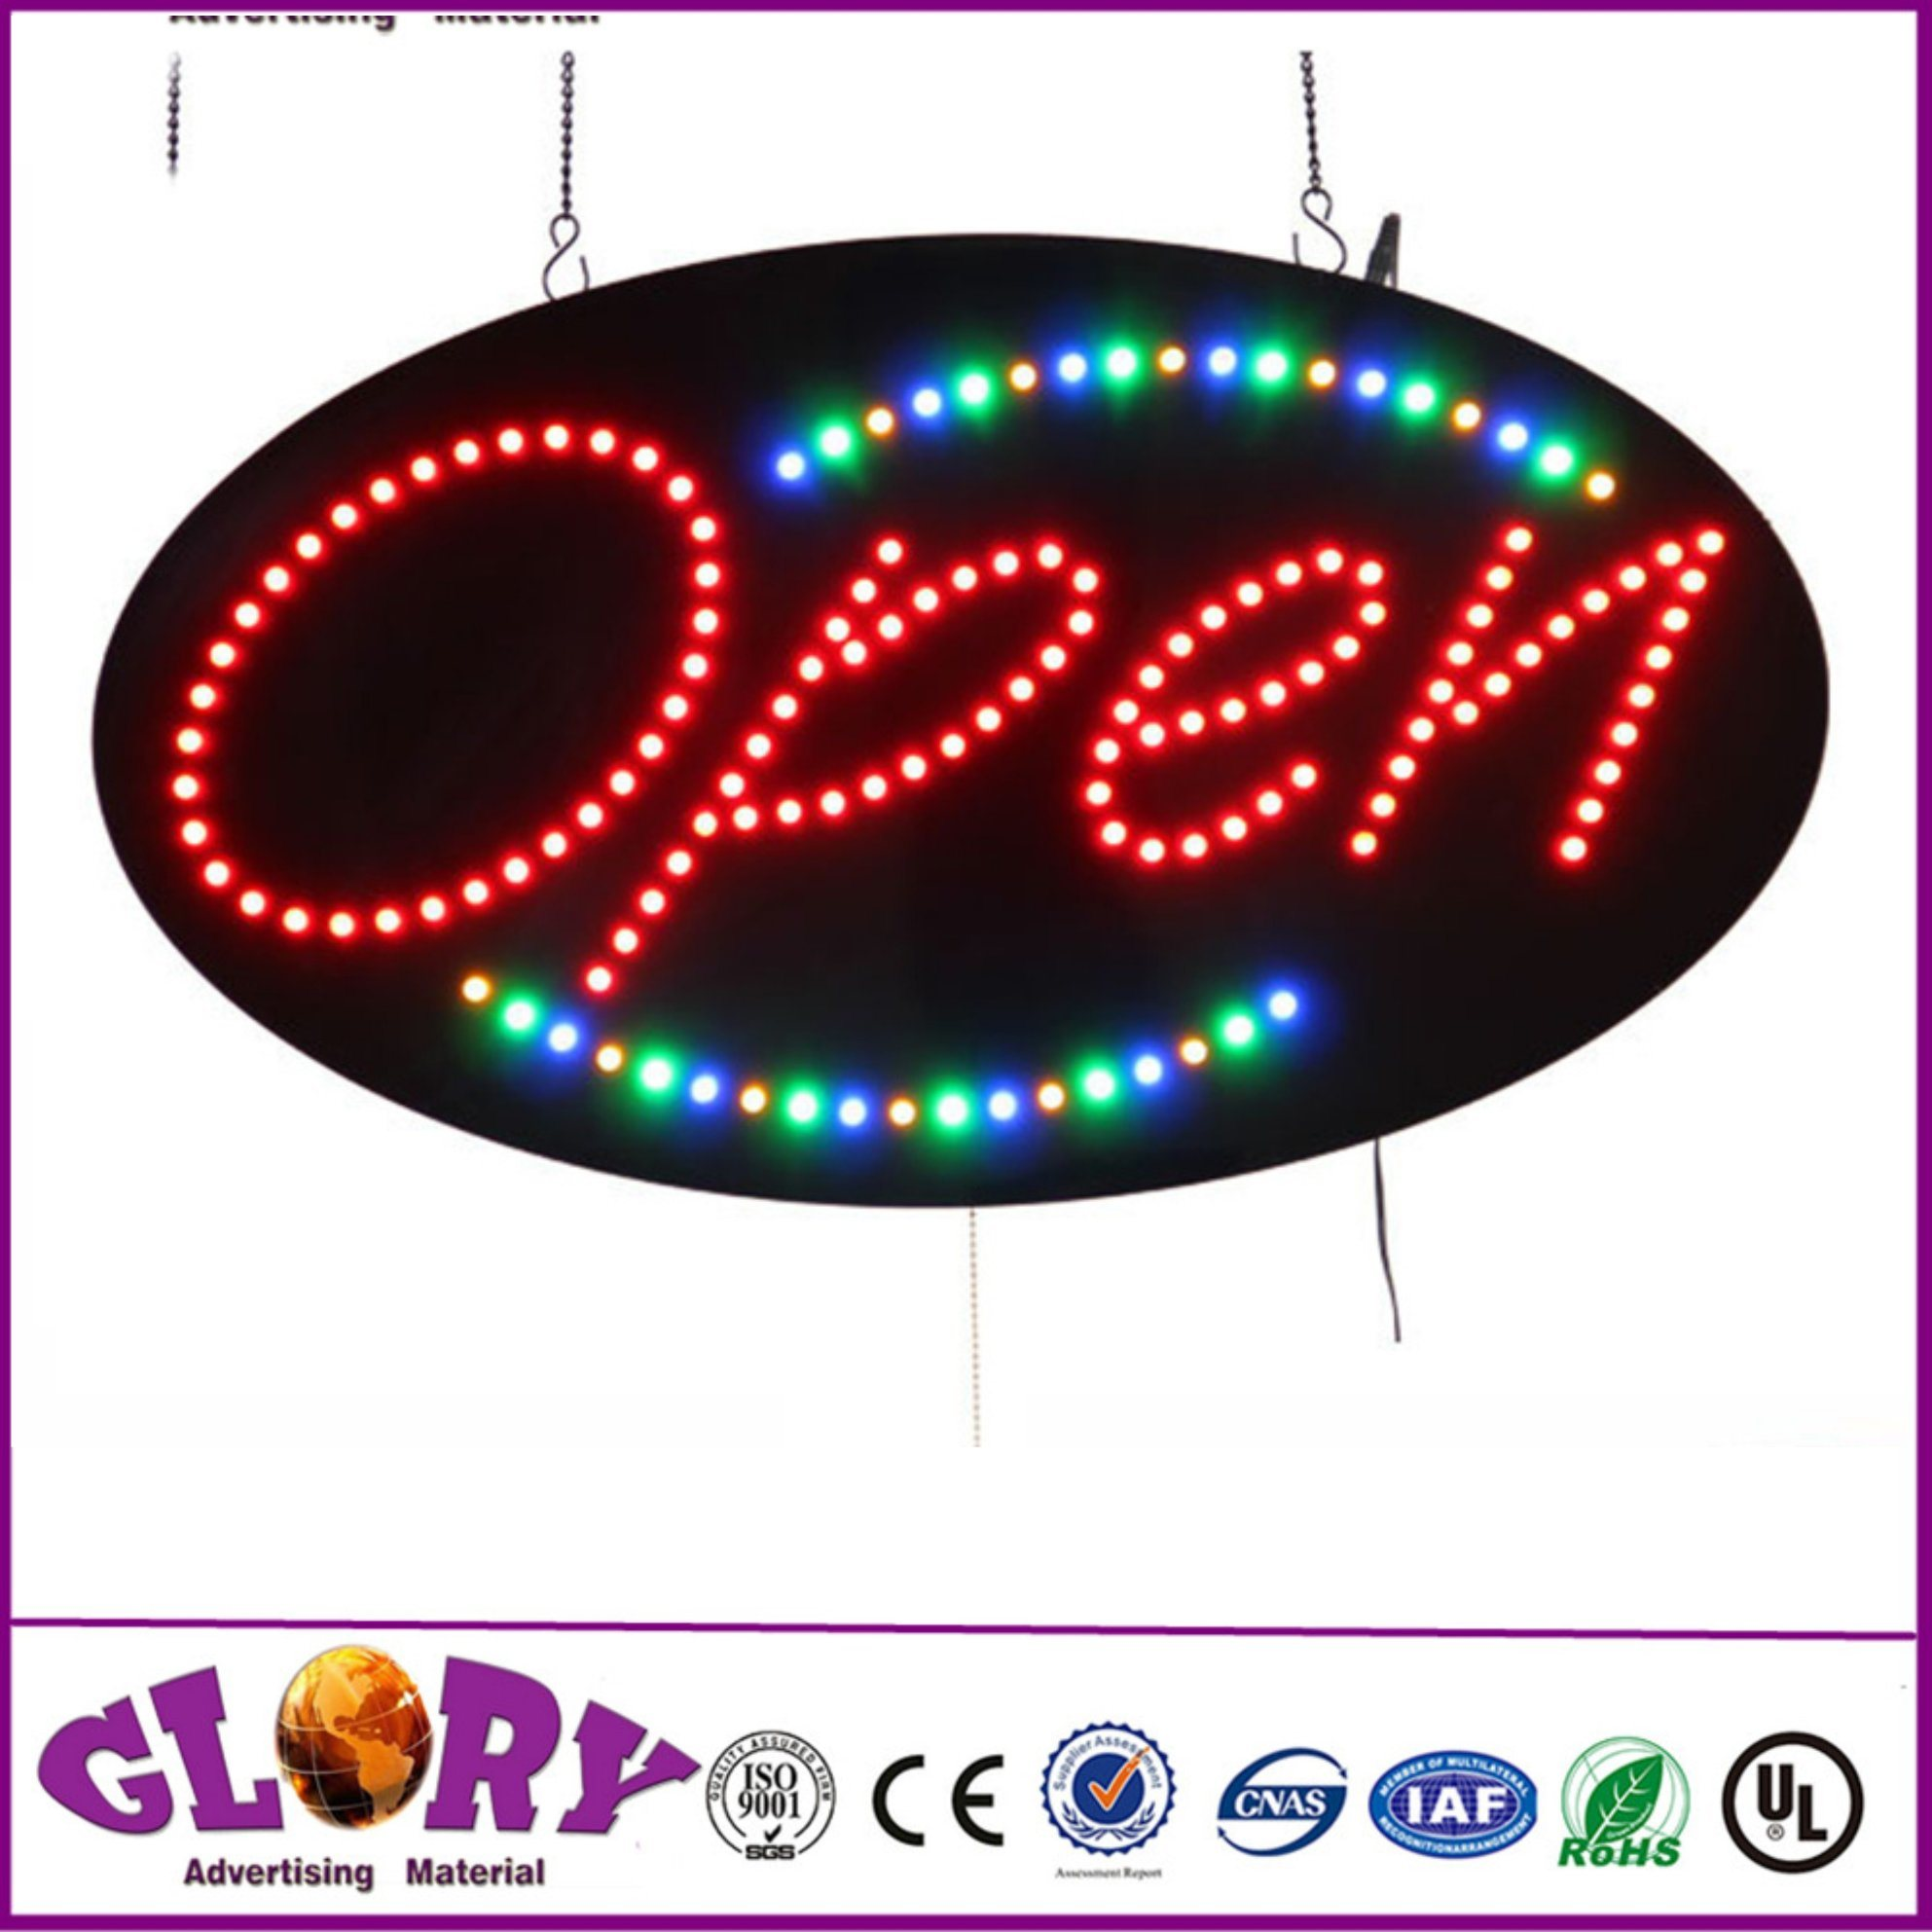 [Hot Item] High Brightness Open Sign with Animation LED Light Oval Open Sign